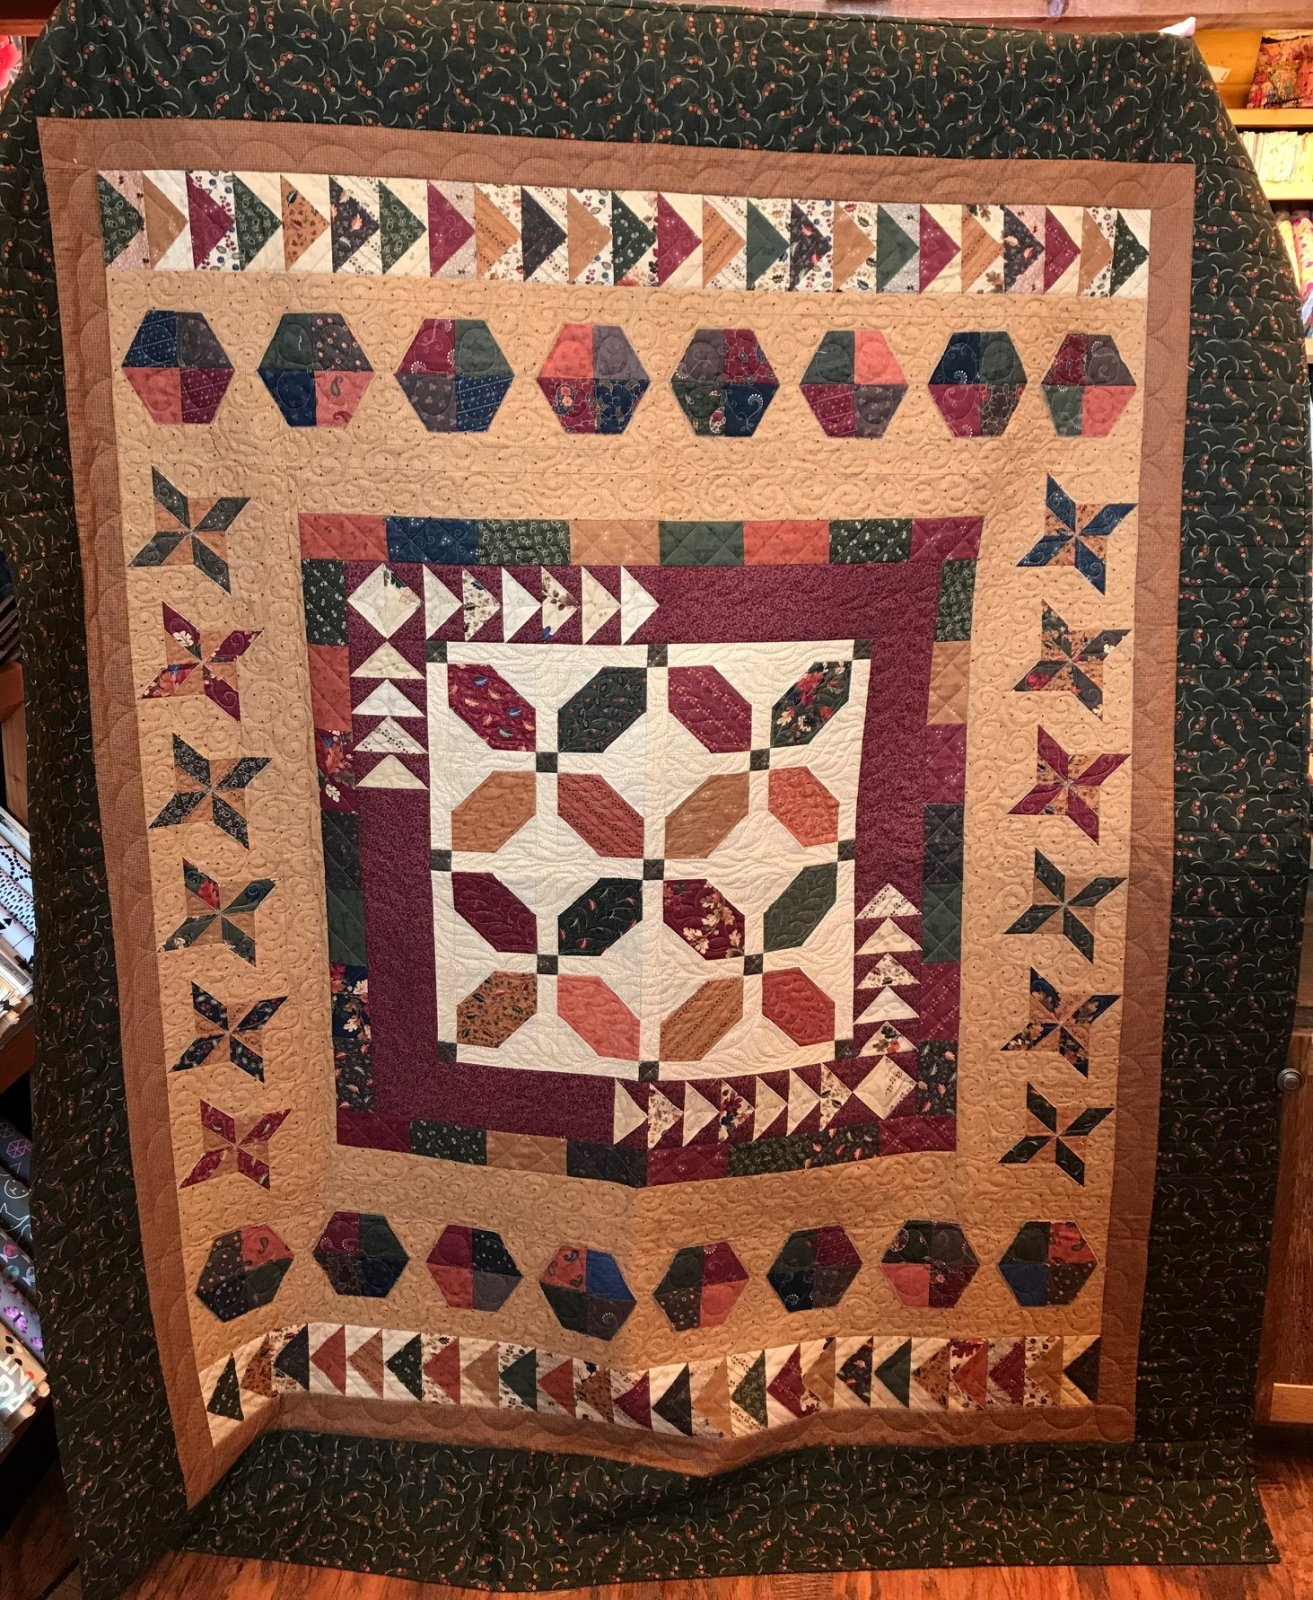 KT Cruisin' Sampler Quilt Kit - 64 x 76